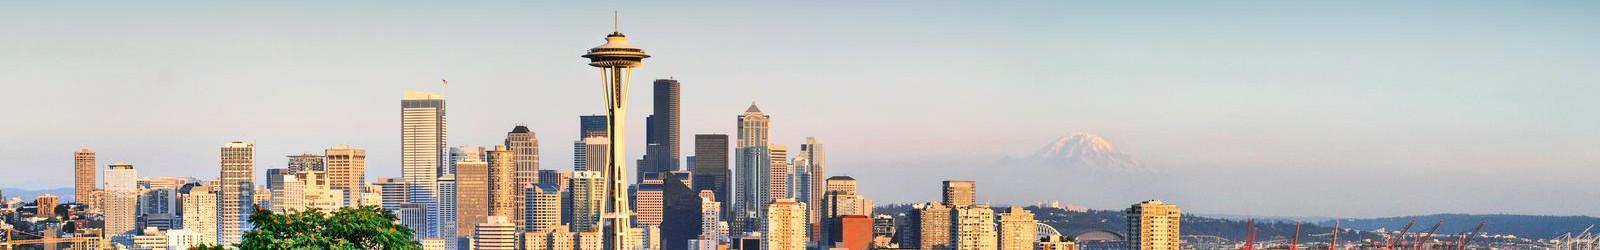 Therapists in Seattle, Washington: psychologists, counselors, and mental health specialists